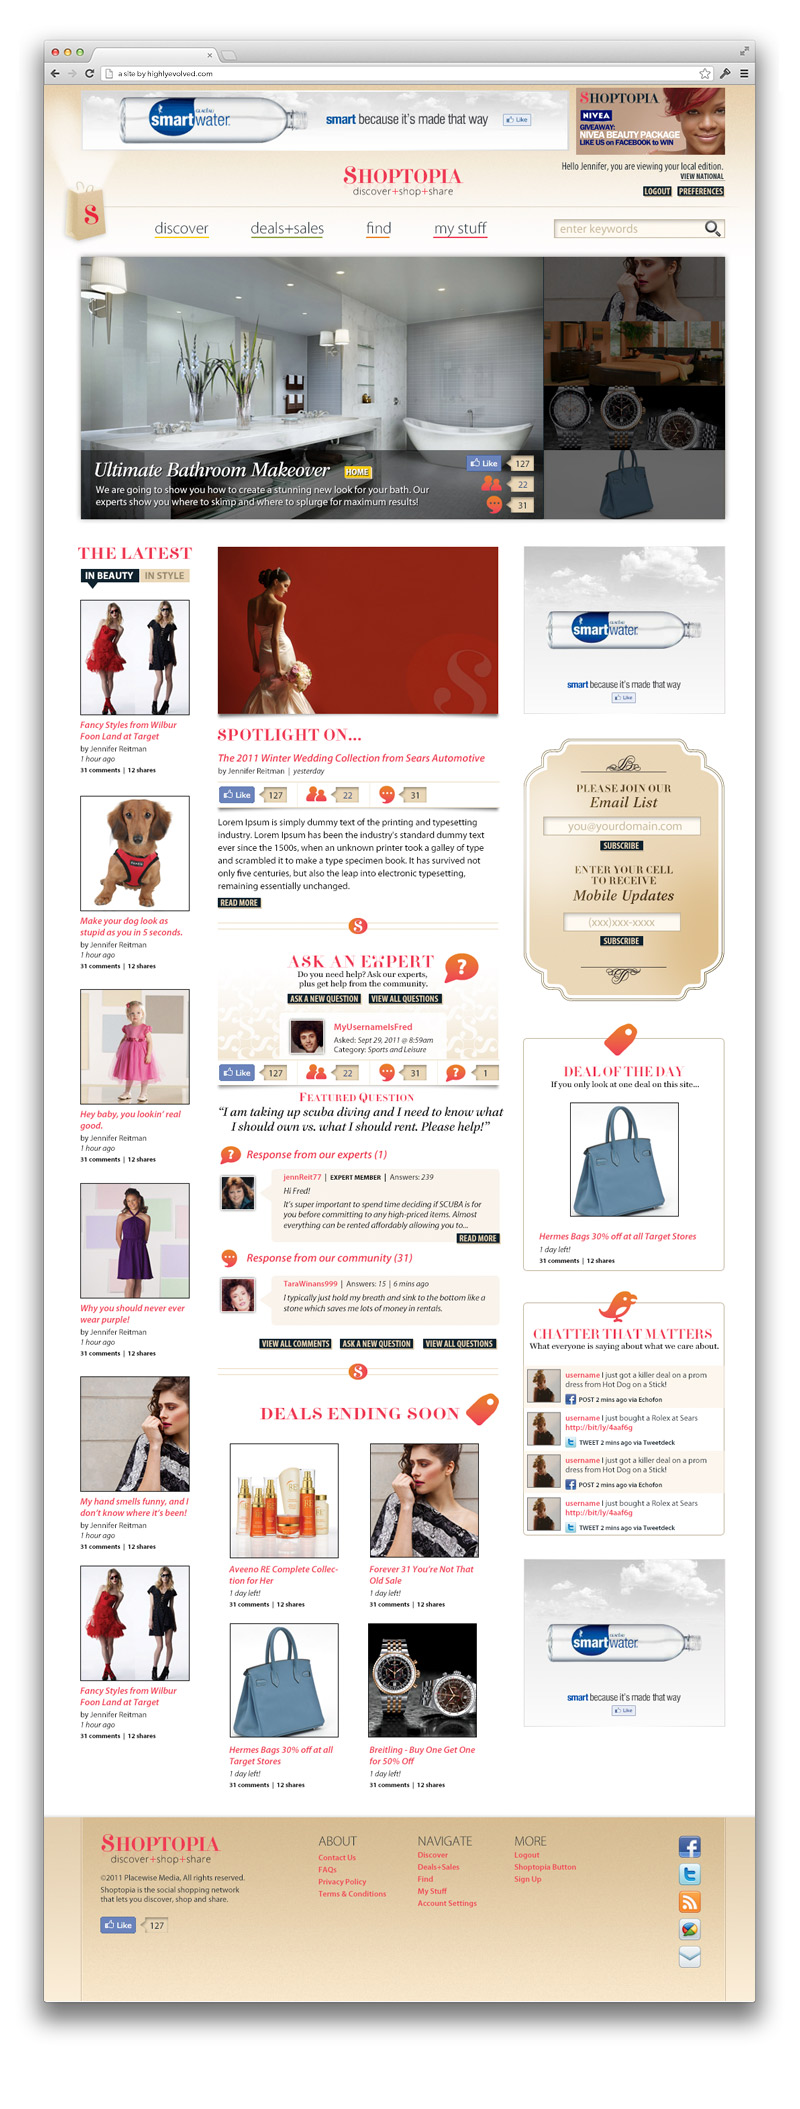 Shoptopia Option 2: Proposed Homepage